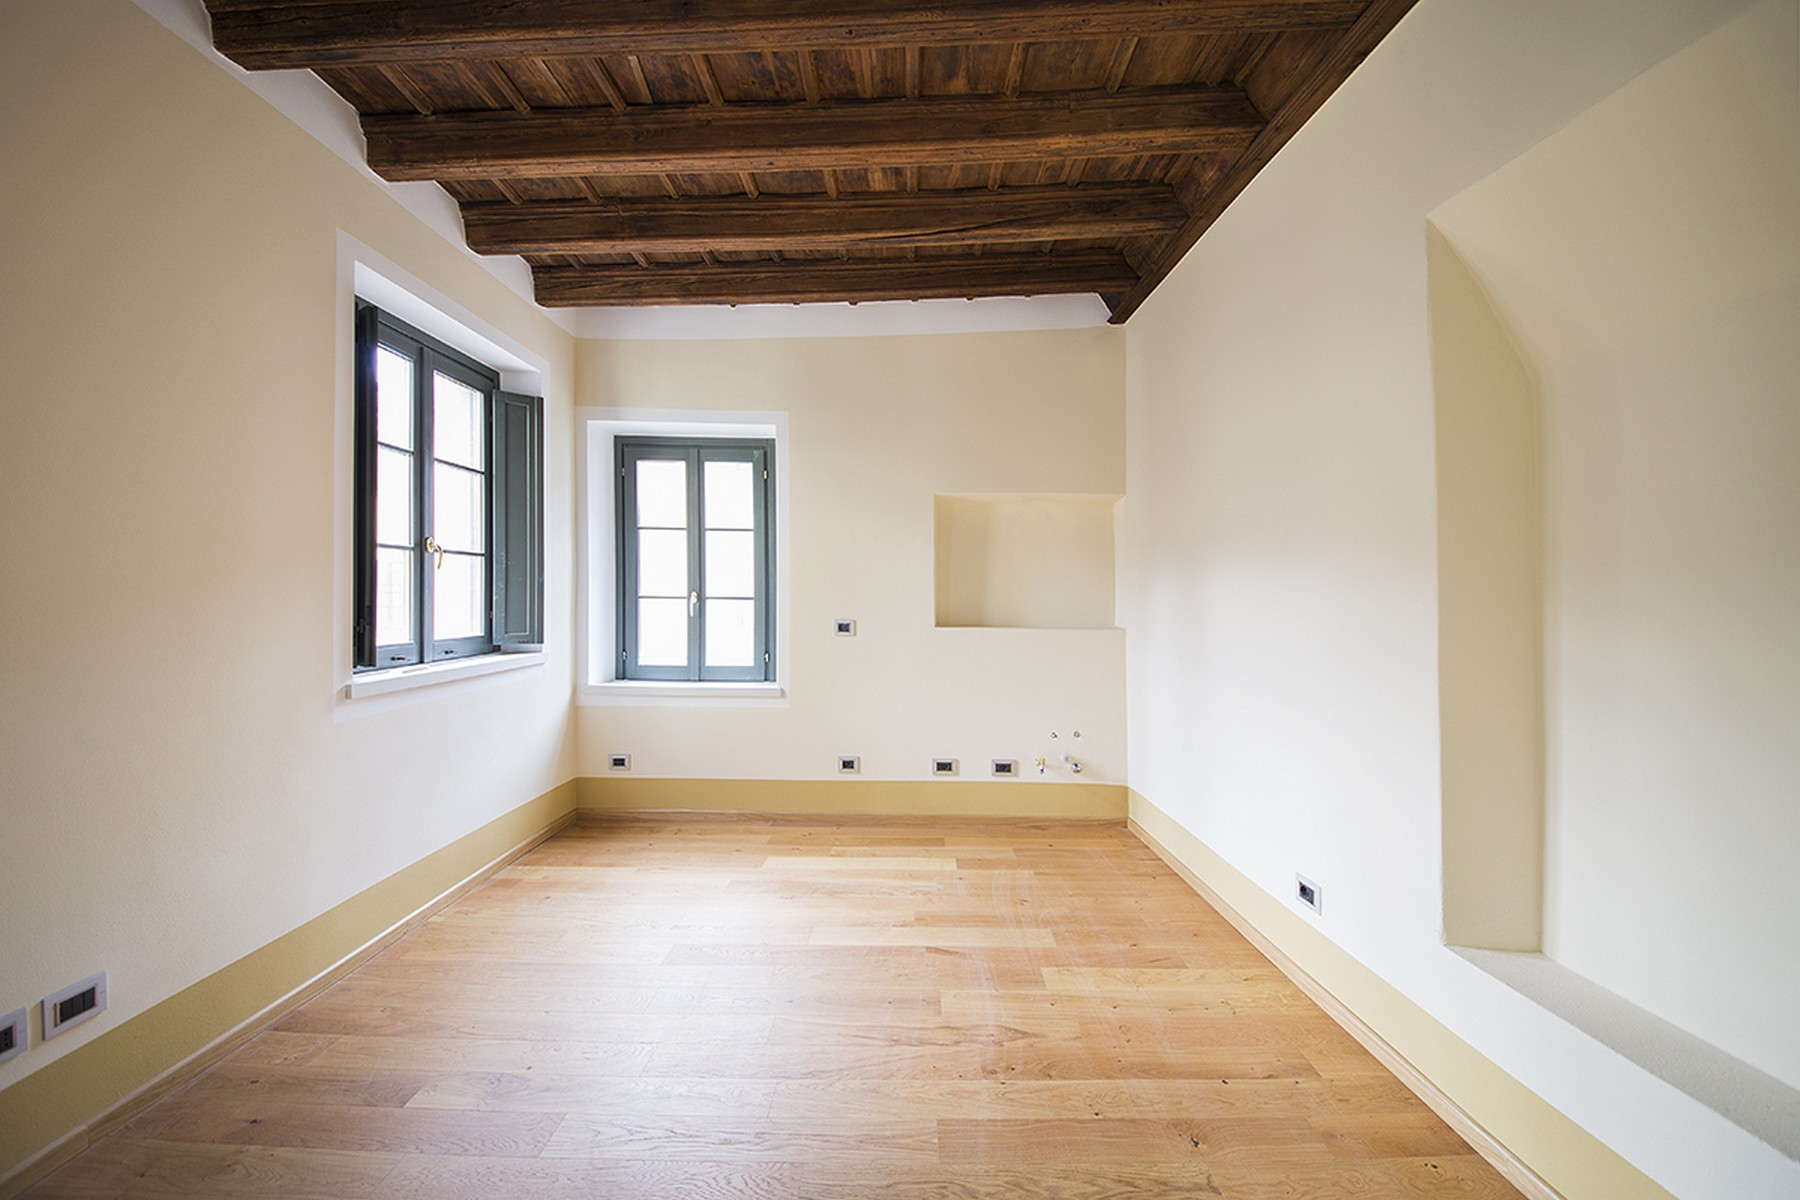 Additional photo for property listing at Magnificent semi-detached house in the historic center of Como Via Cinque Giornate Como, Como 22100 Italia